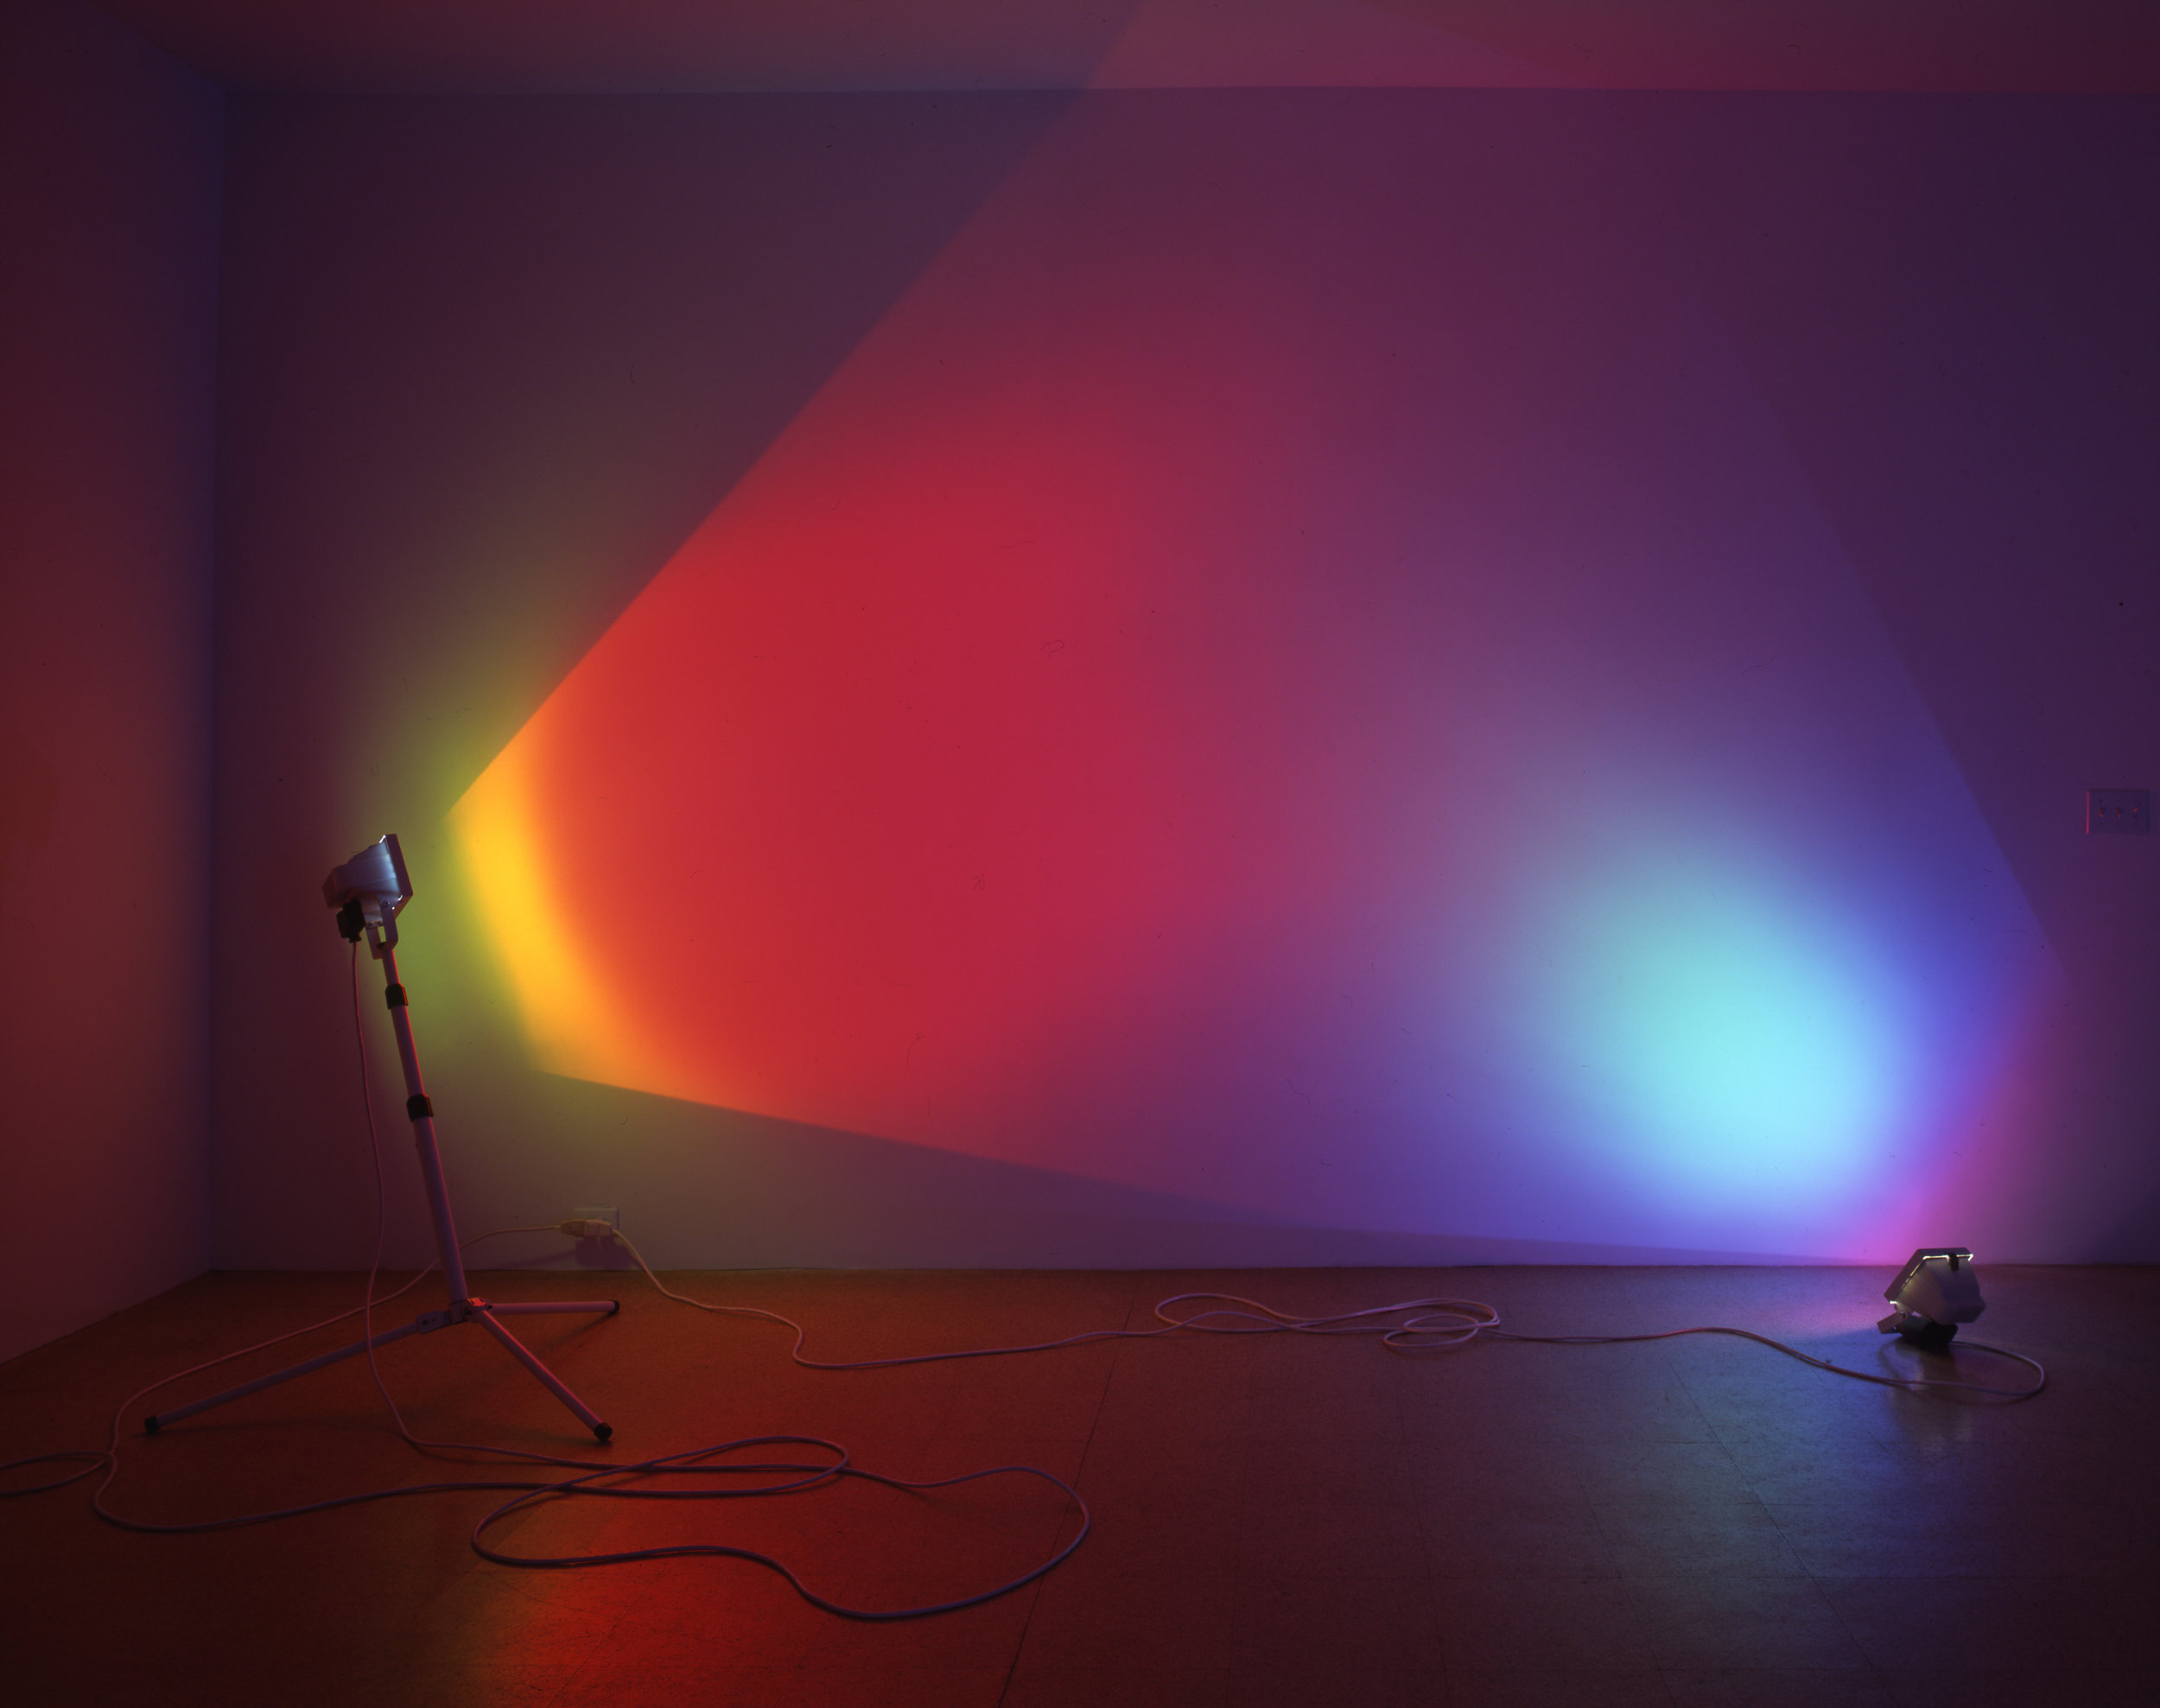 """Ann Veronica Janssens, """"Red and Turquoise,"""" 2005, 2 x 500-300 watt halogen lamp, dichroic colour filter, tripod, Dimension variable, approx. 187.01 x 118.11 inches"""